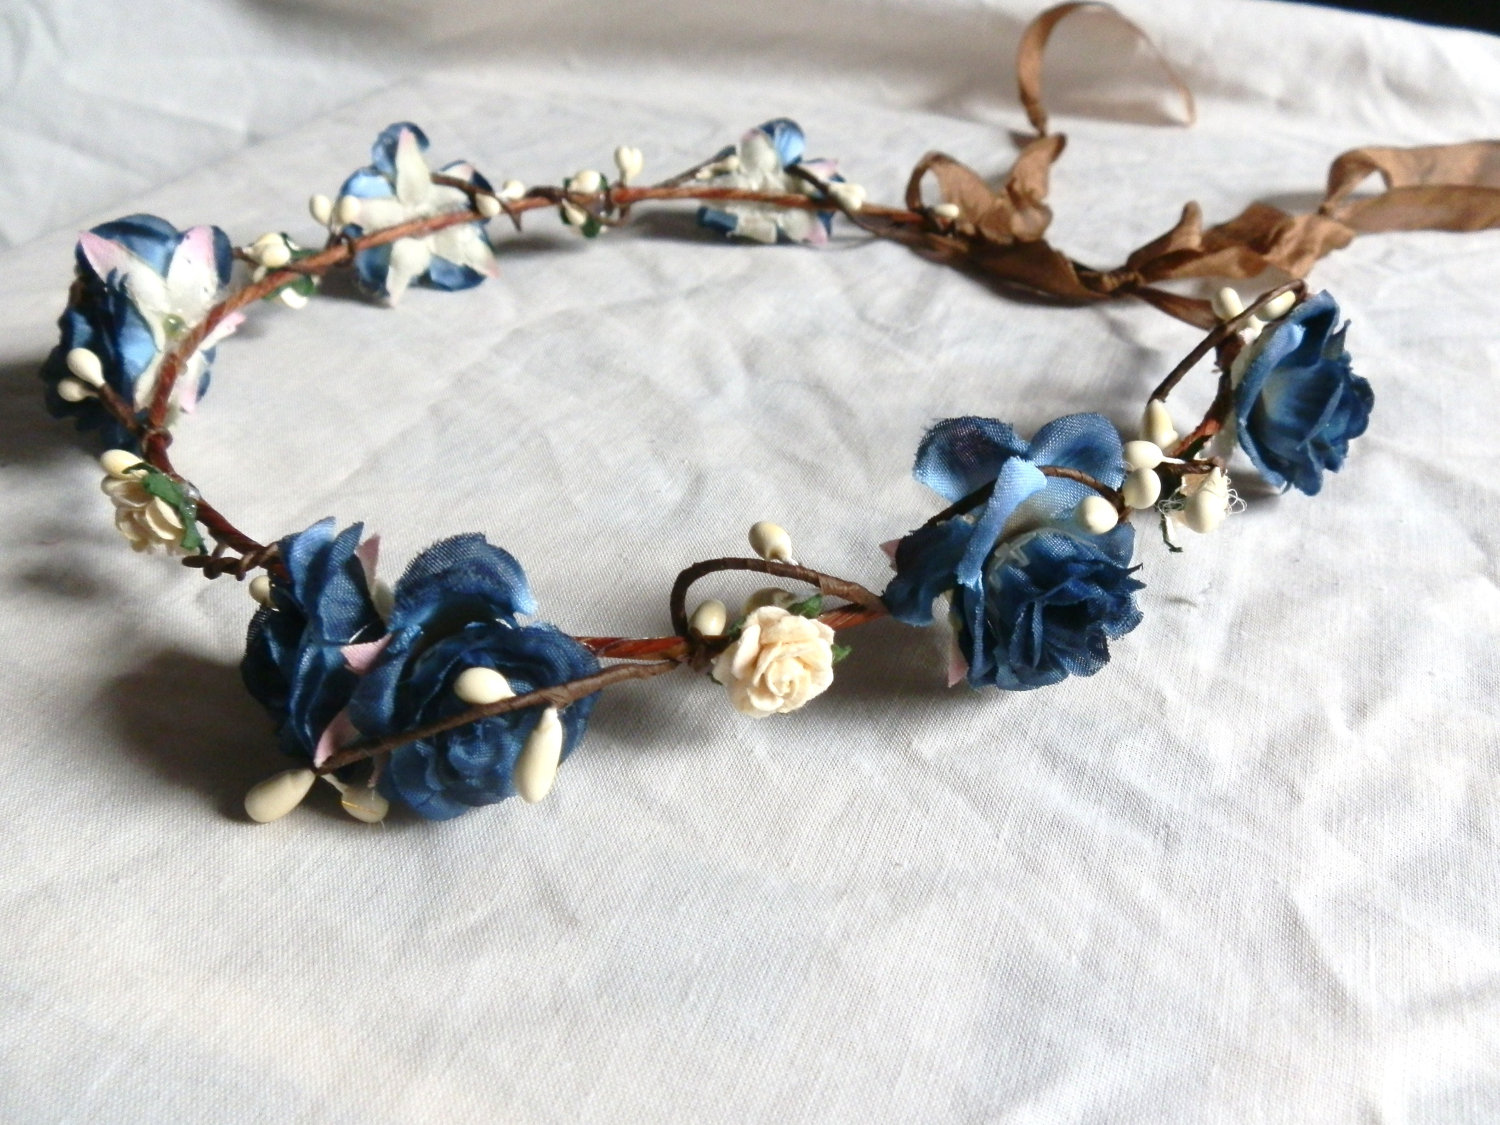 flower floral crown hair wreath ( blue and white rose) Wedding headpiece, headband, vintage inspired rose crown, french ribbon pip berries